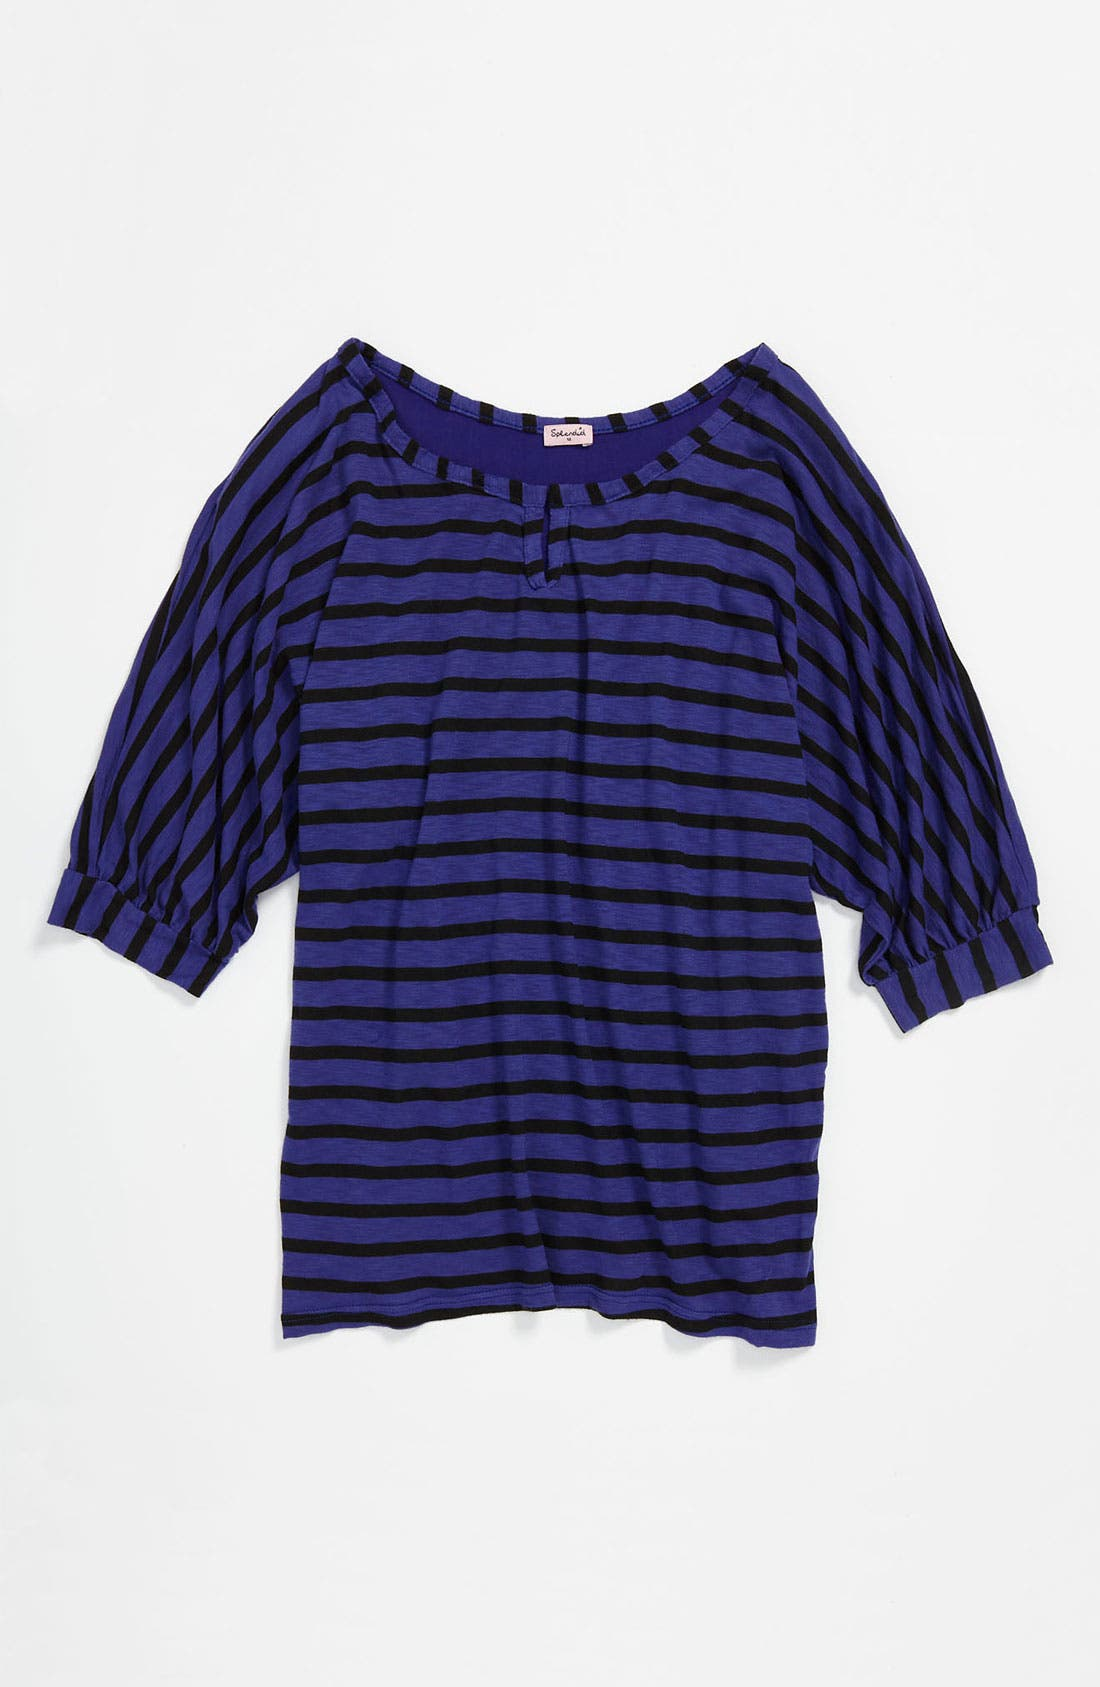 Main Image - Splendid 'Venice' Stripe Top (Big Girls)